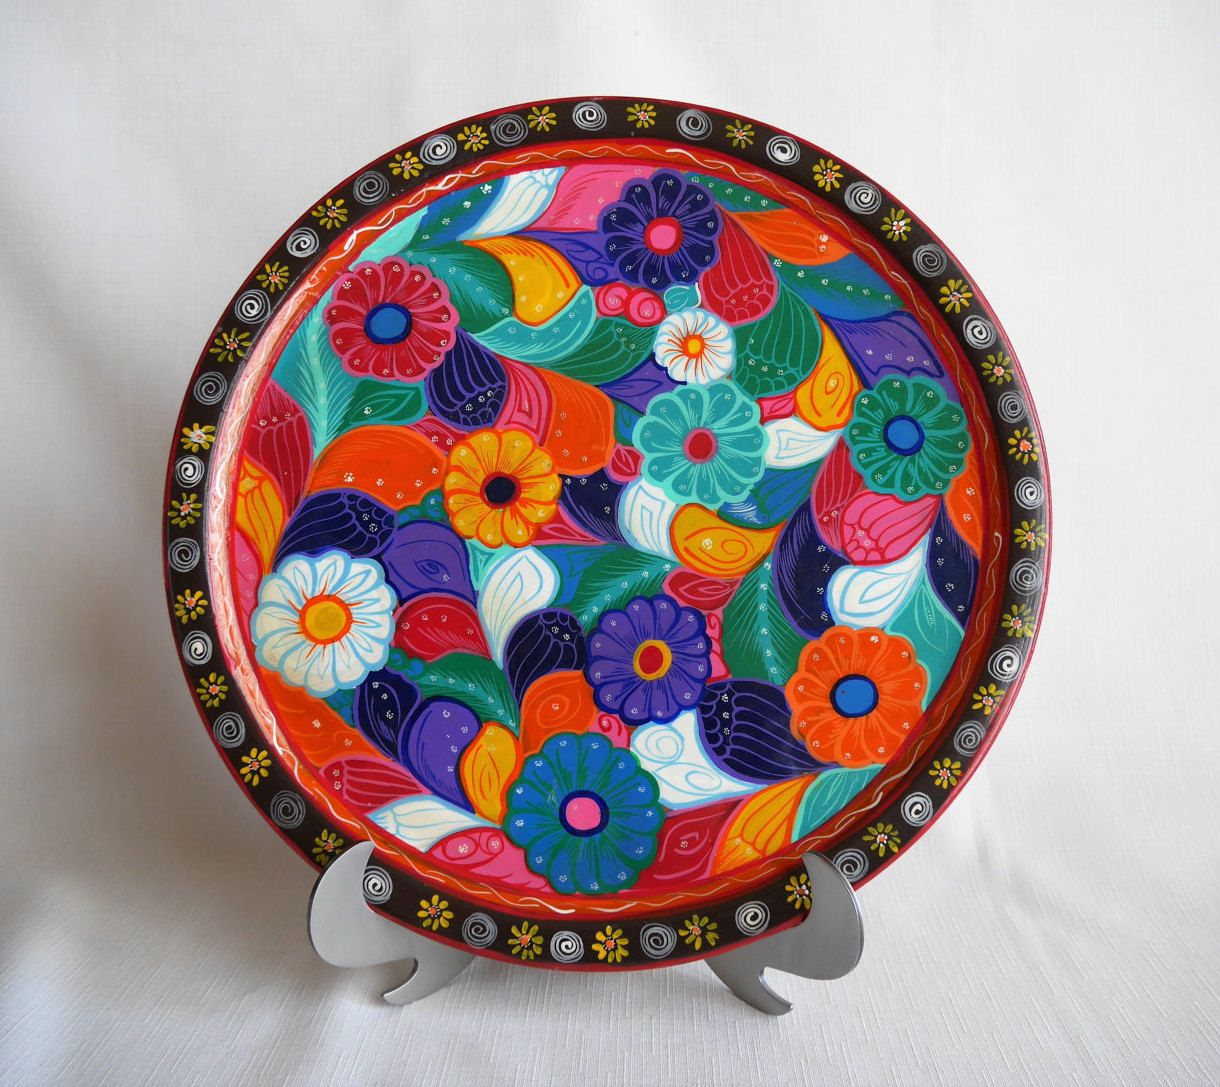 Recent Festive Wooden Mexican Floral Batea Platter, Plate, Tray, Multi Intended For Multi Plates Wall Decor (View 10 of 20)